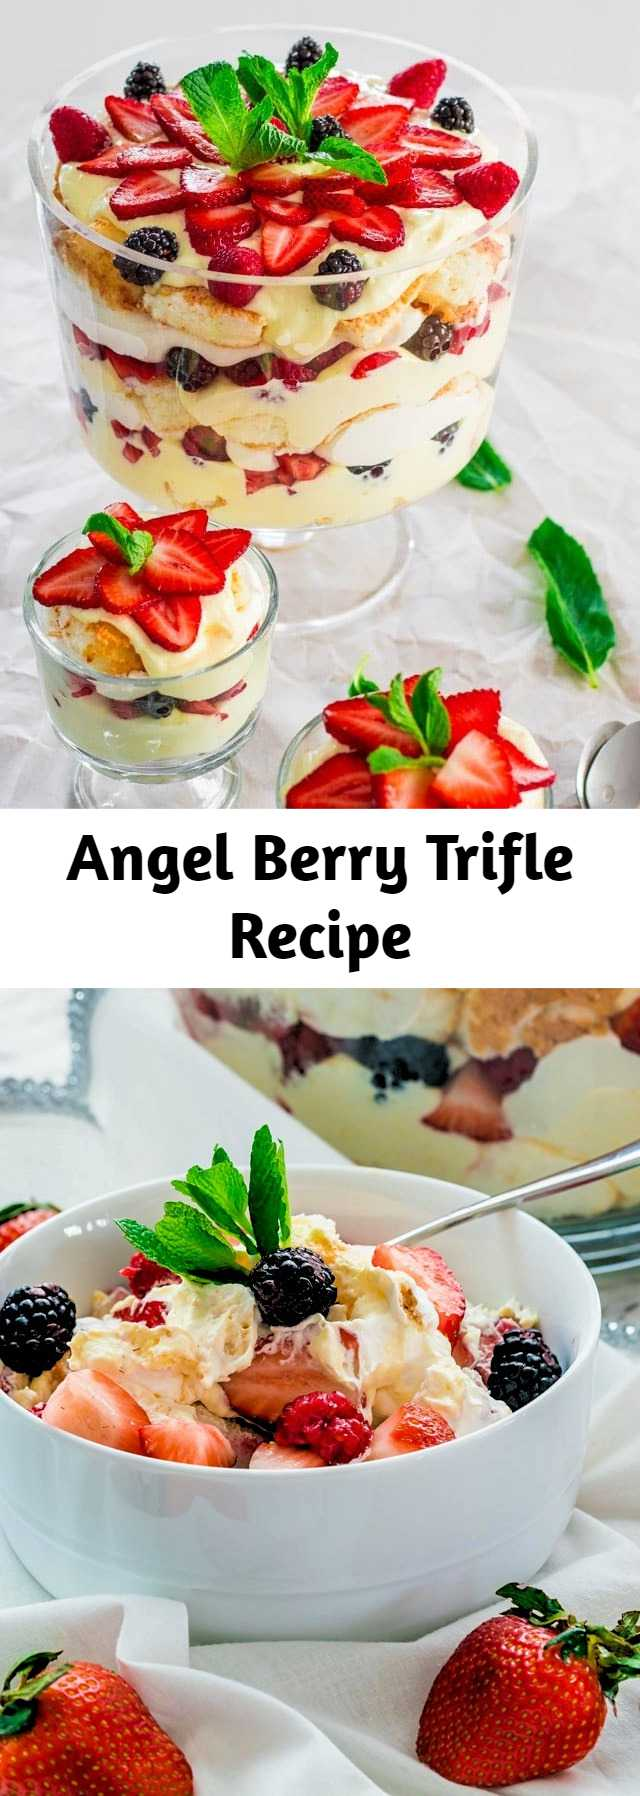 Angel Berry Trifle Recipe